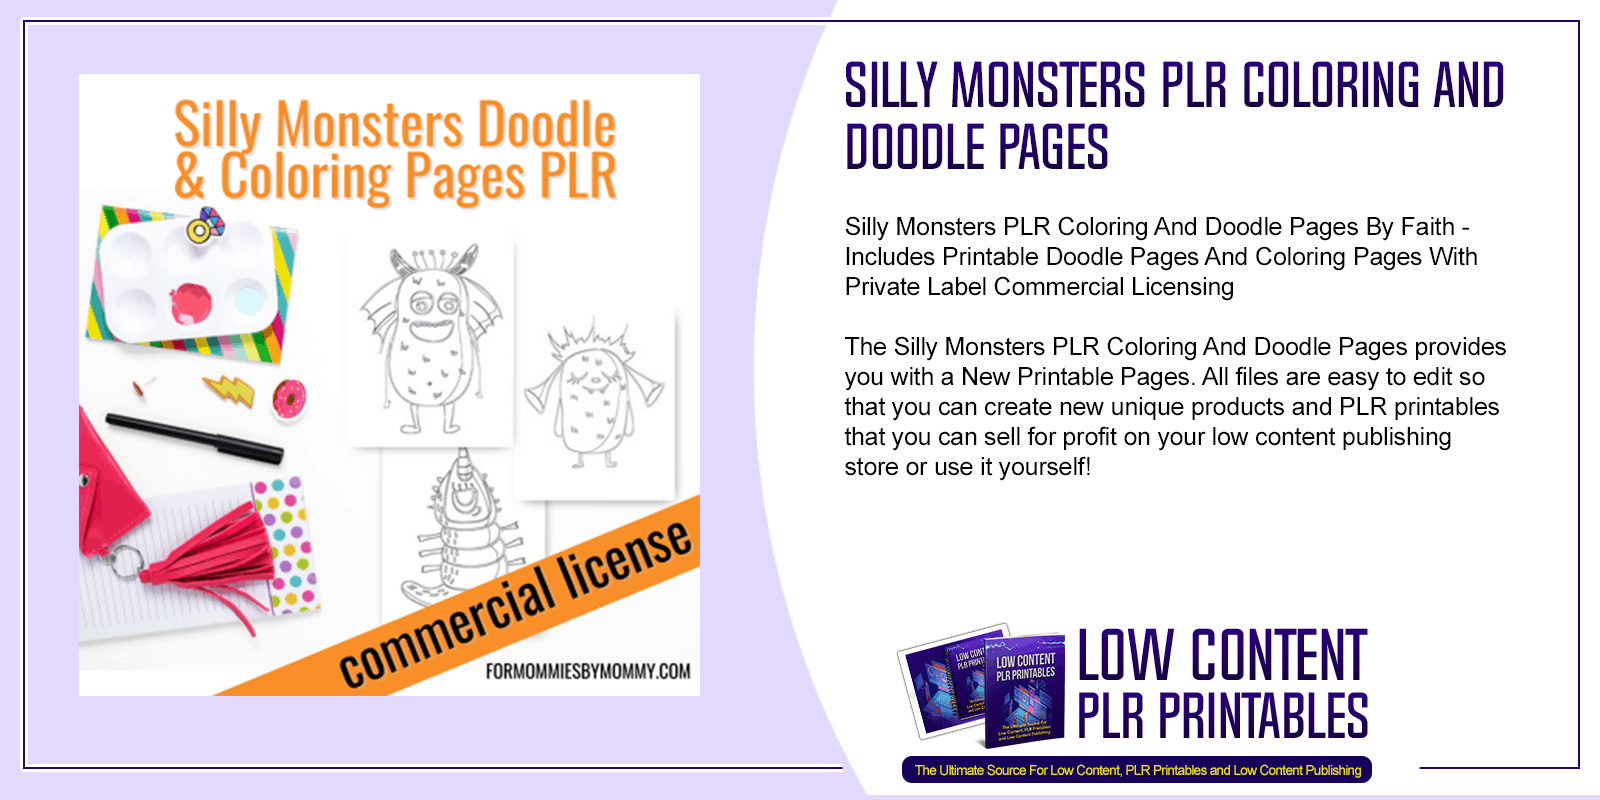 Silly Monsters PLR Coloring And Doodle Pages